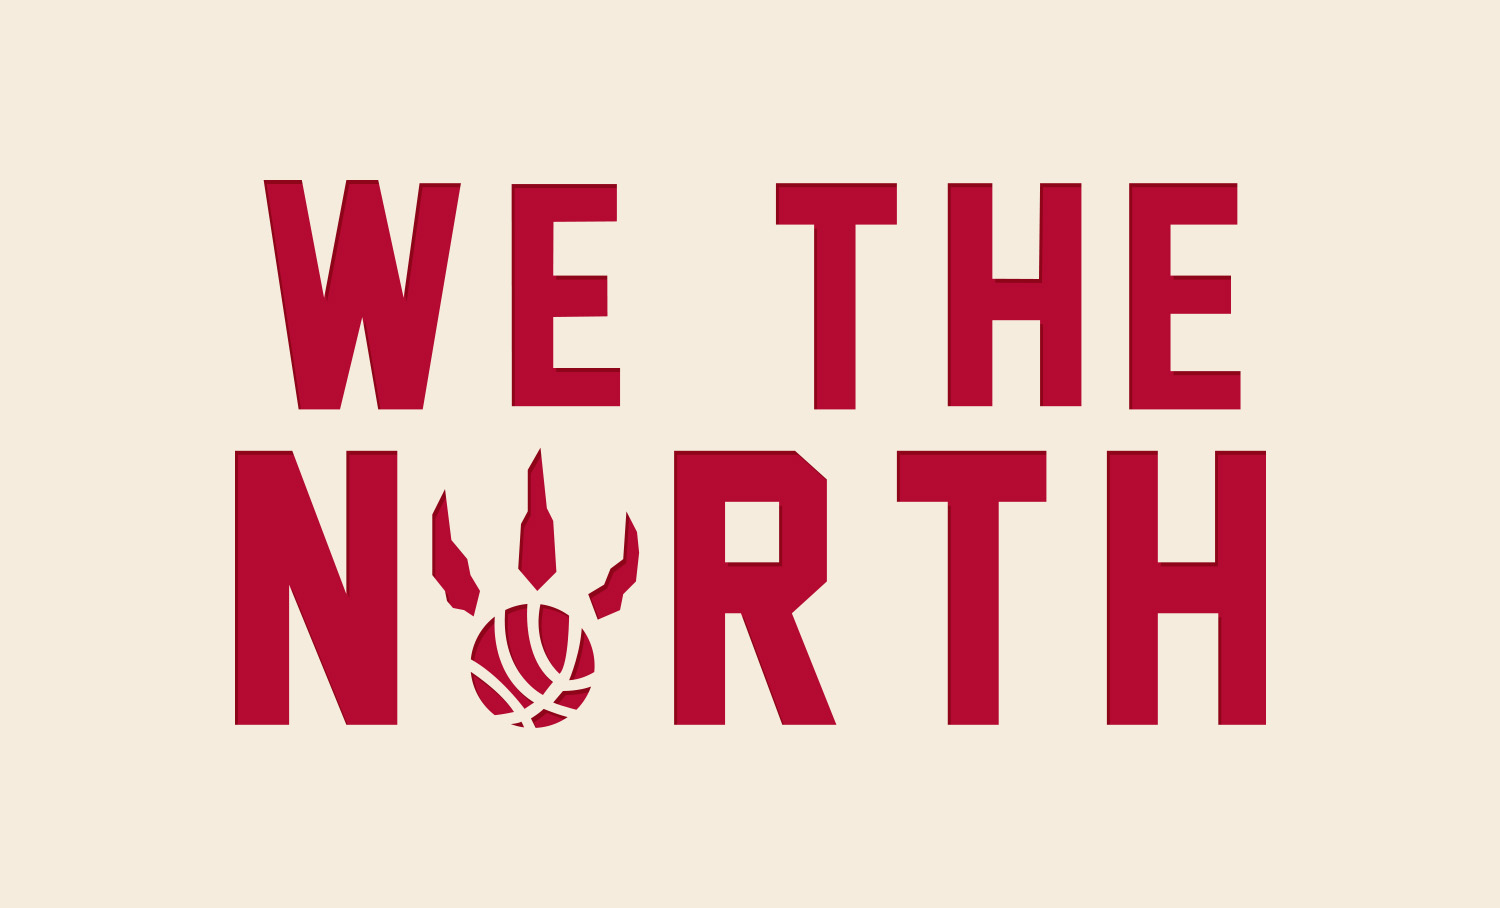 Raptors season excites nation the cord